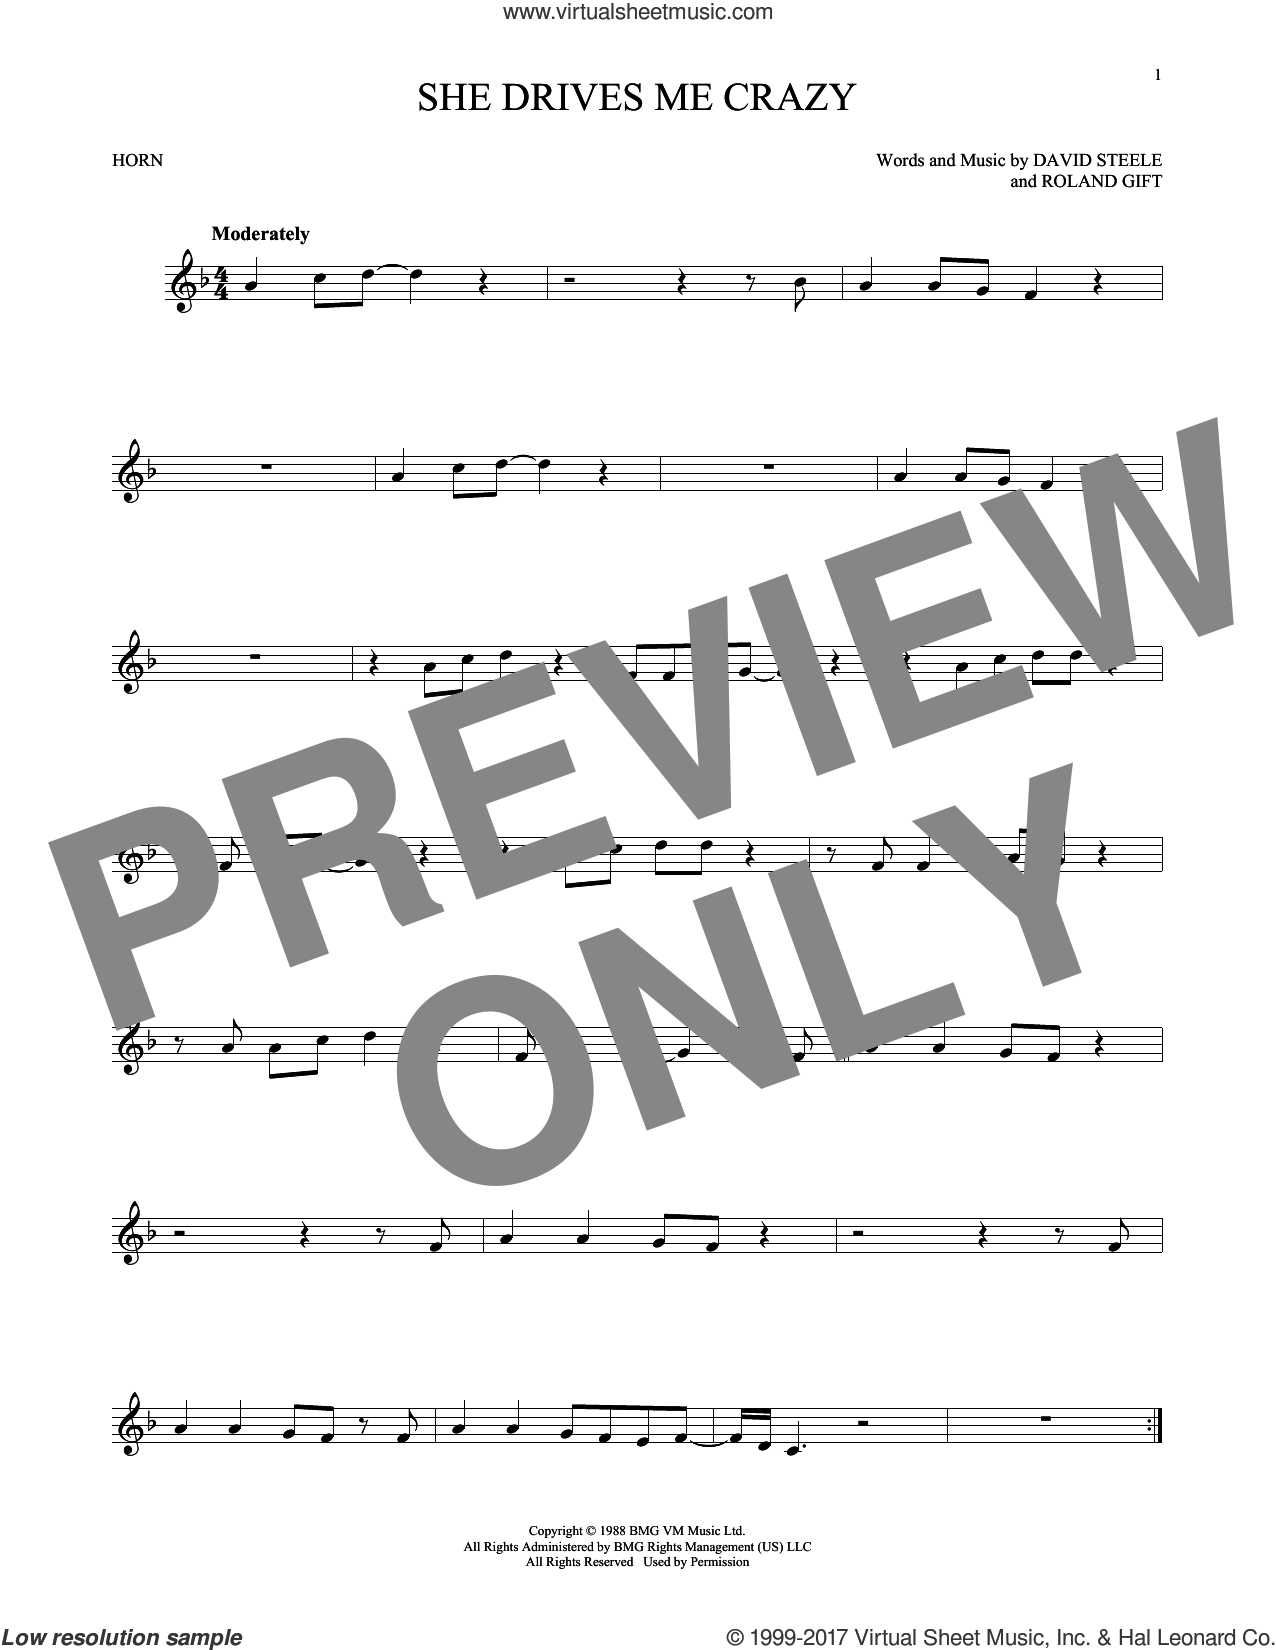 She Drives Me Crazy sheet music for horn solo by Fine Young Cannibals, David Steele and Roland Gift, intermediate skill level